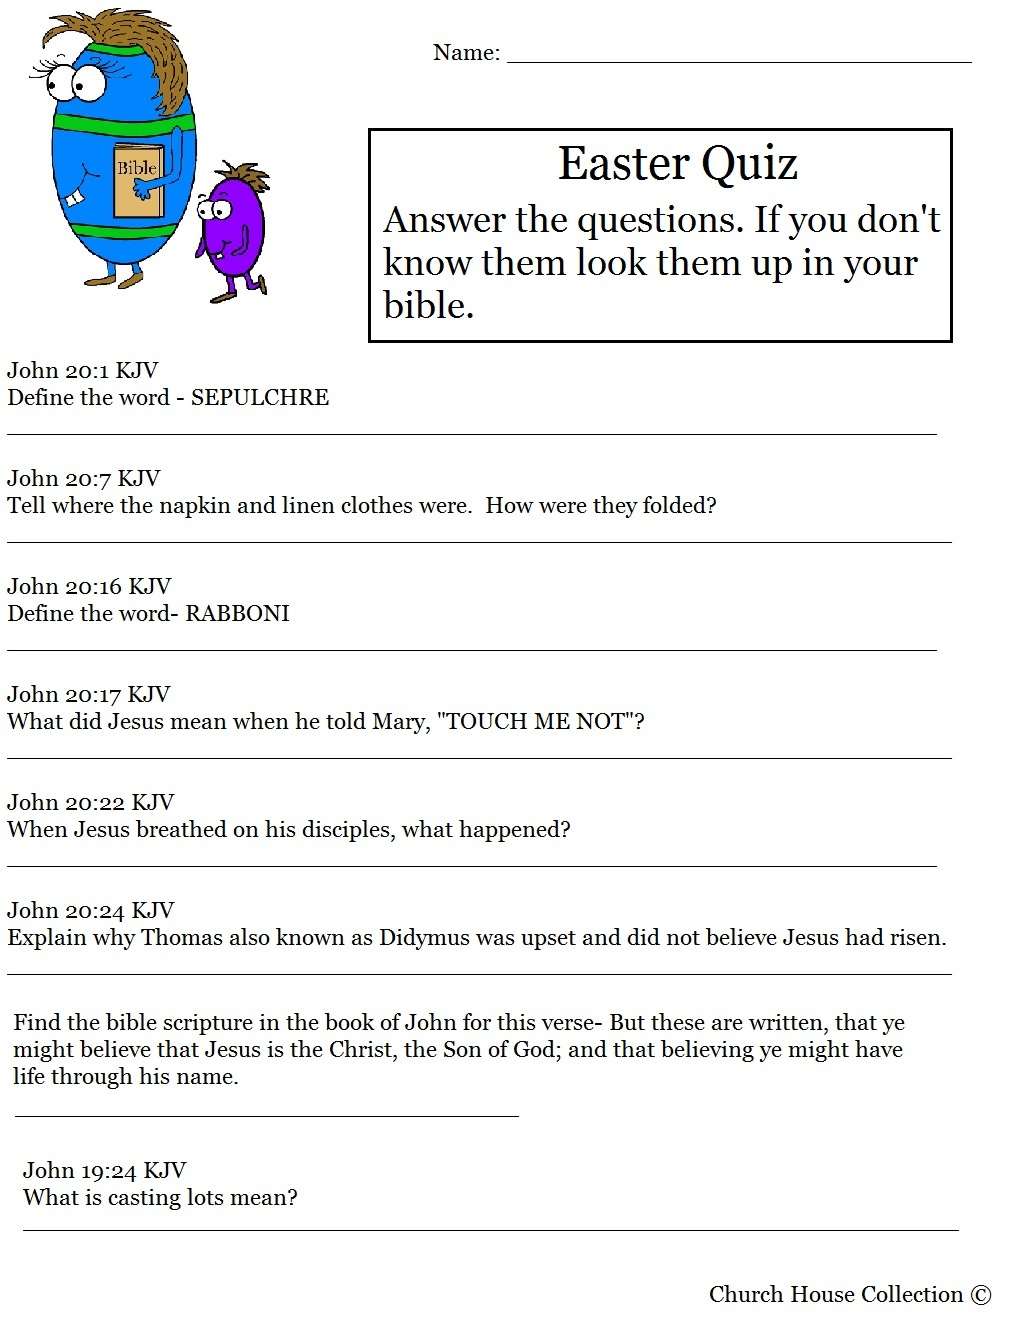 Hard Easter Quiz On Resurrection Of Jesus - Free Printable Bible Trivia Questions And Answers